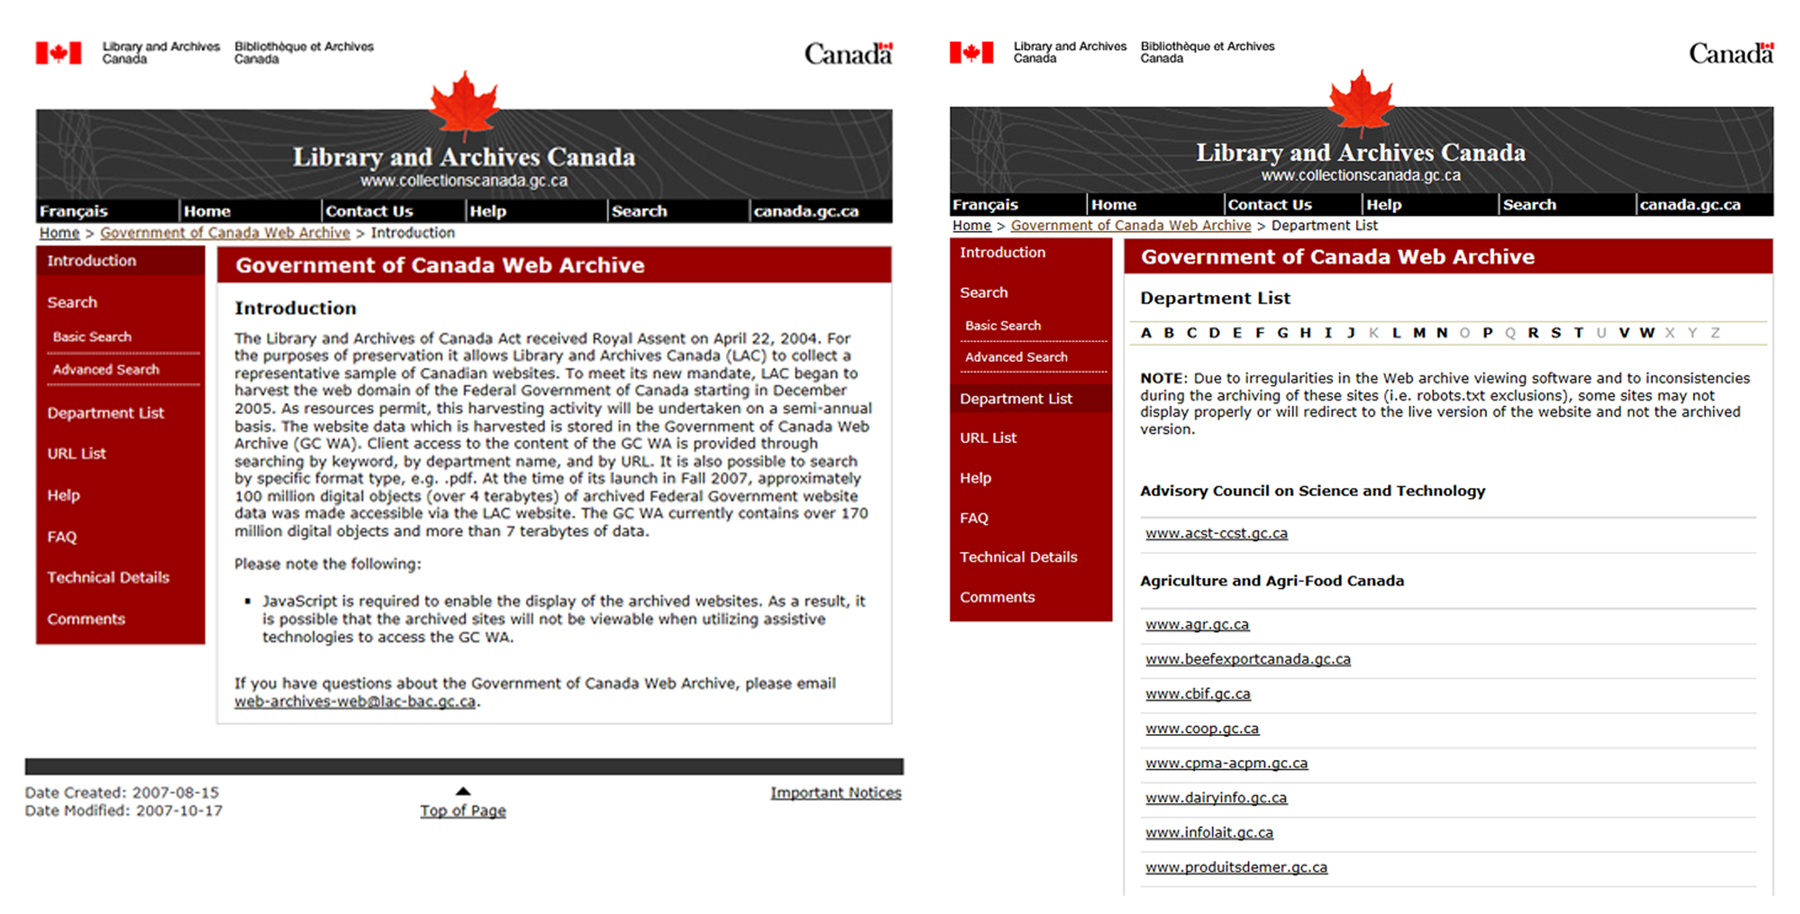 Library and Archives Canada Blog